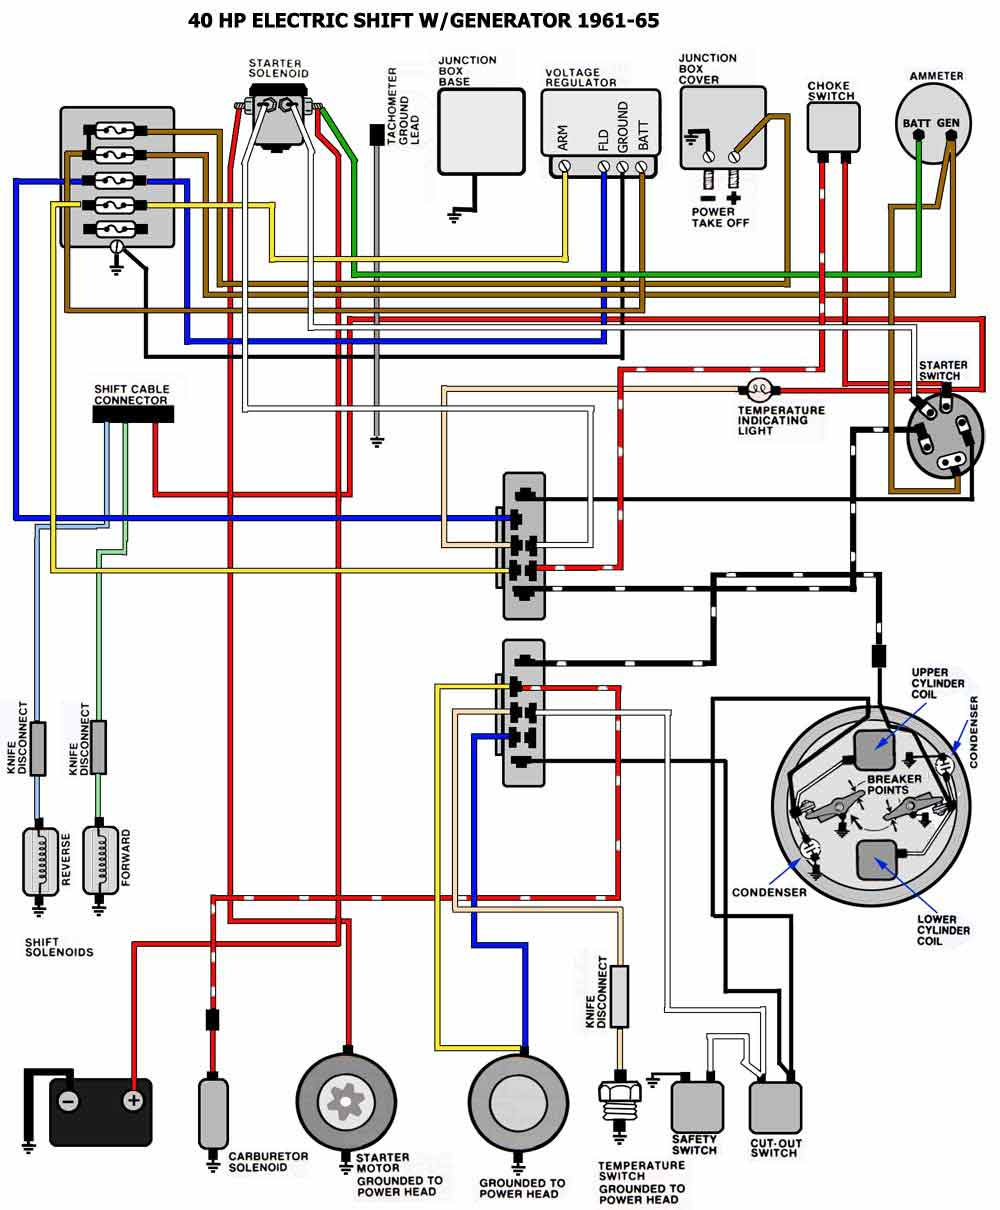 115 Hp Evinrude Diagram Wiring Schematic | Wiring Diagram Honda Key Switch Wiring Diagram on